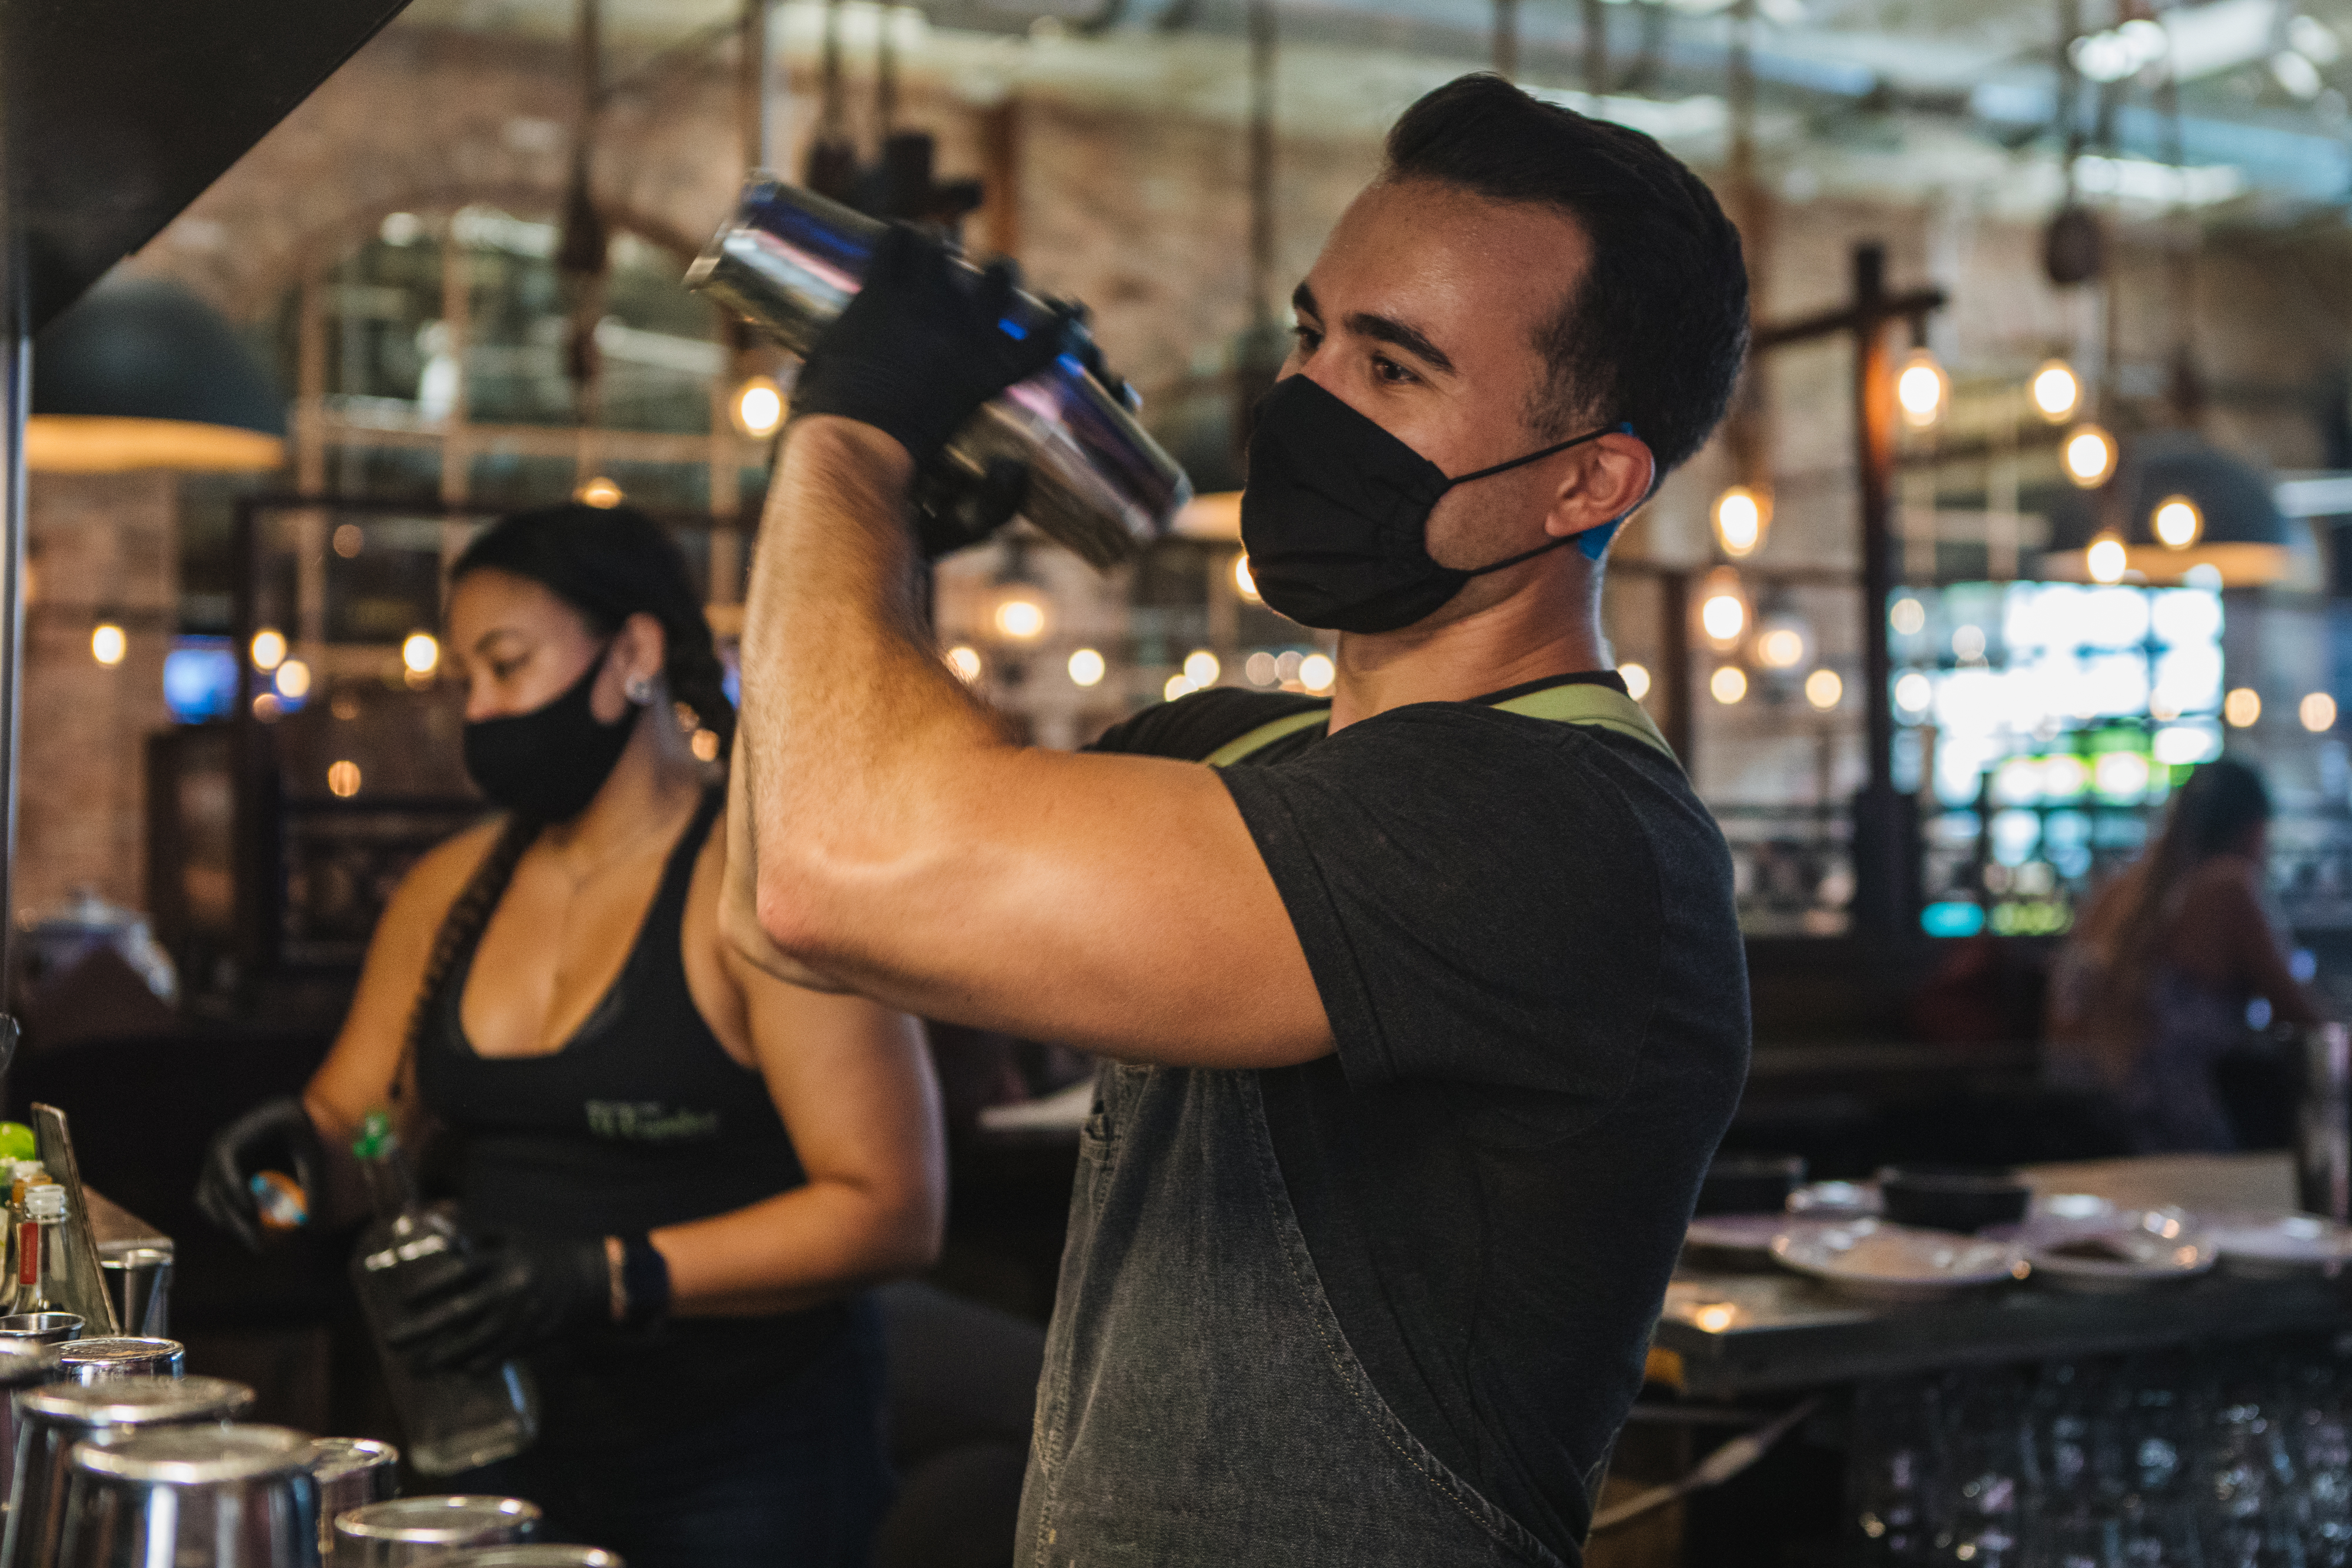 Employees wearing protective masks and gloves prepare drinks at a restaurant in Fort Lauderdale, Florida, U.S., on June 25, 2020.